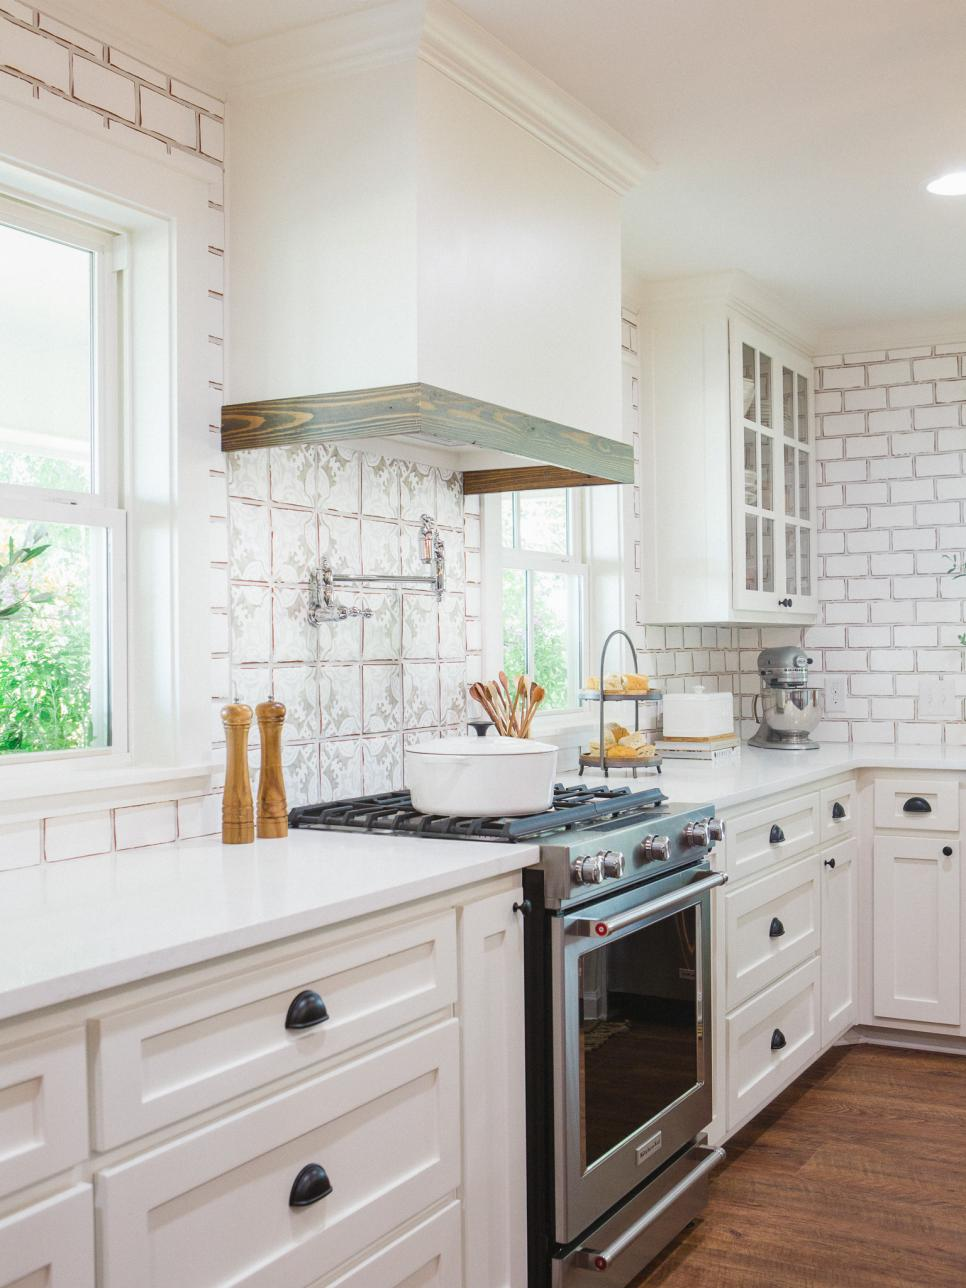 Fixer upper second chance at a home in the country hgtv for Kitchen ideas joanna gaines